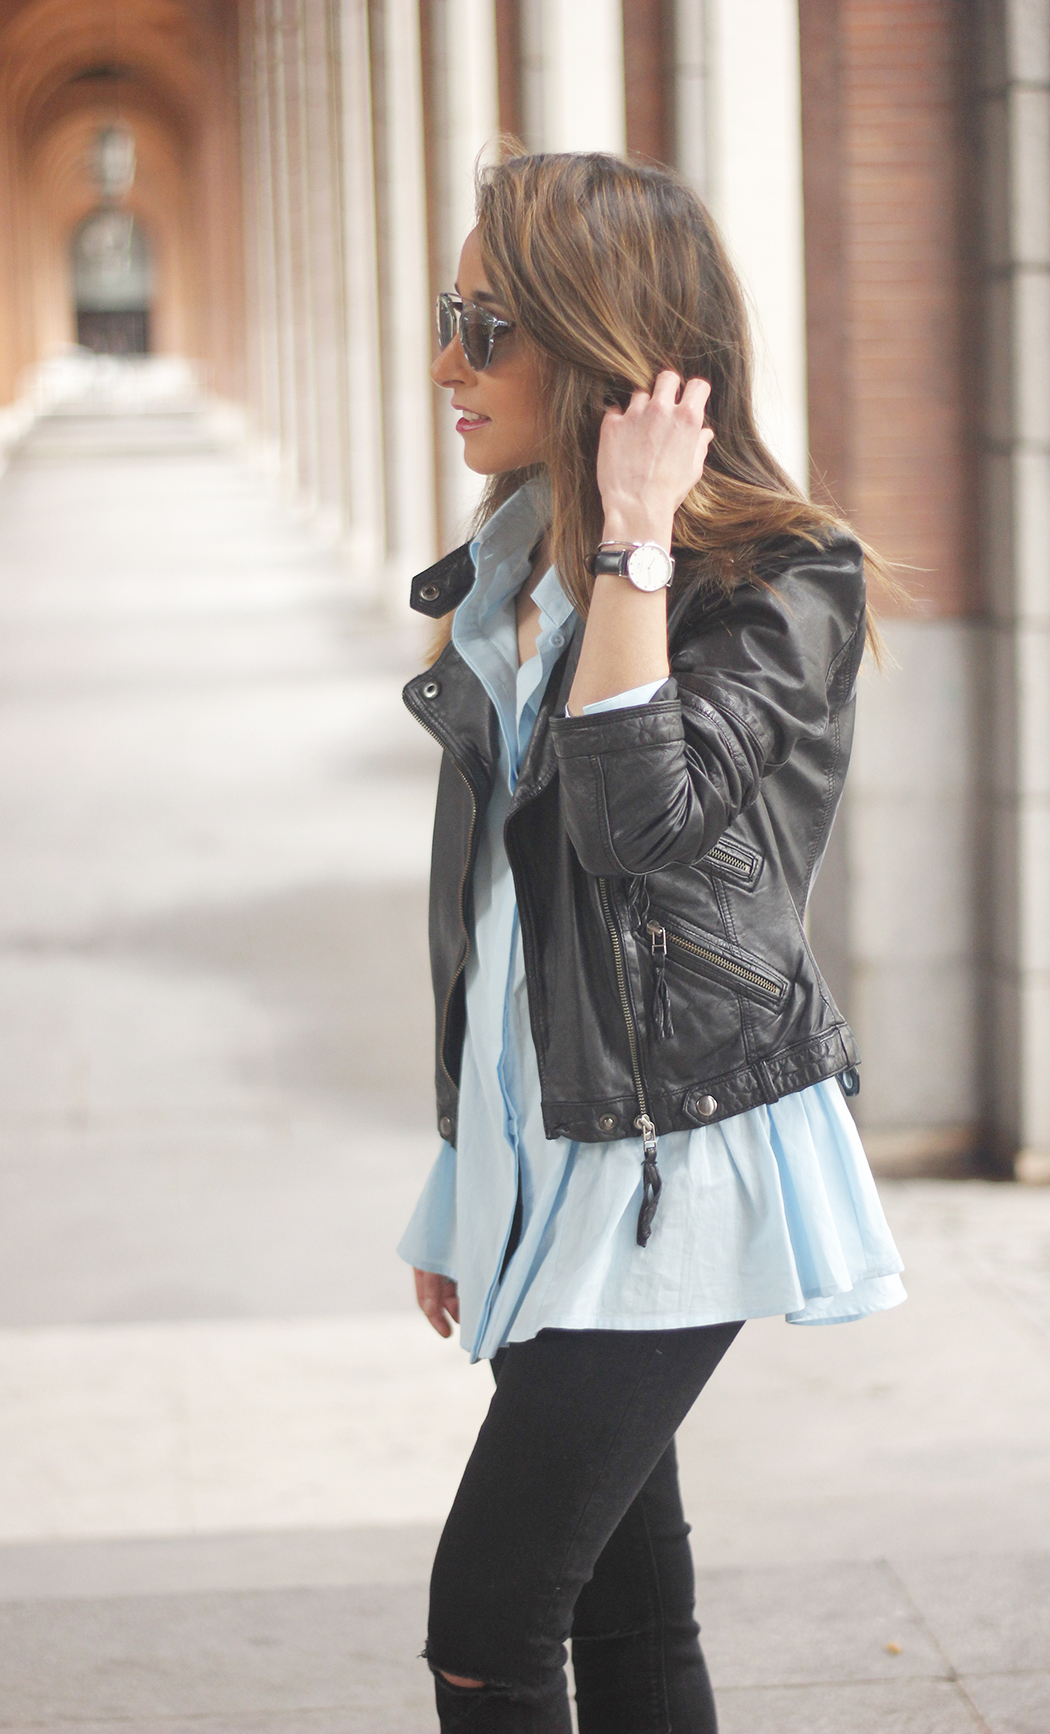 black leather biker black ripped jeans blue shirt outfit streetstyle14